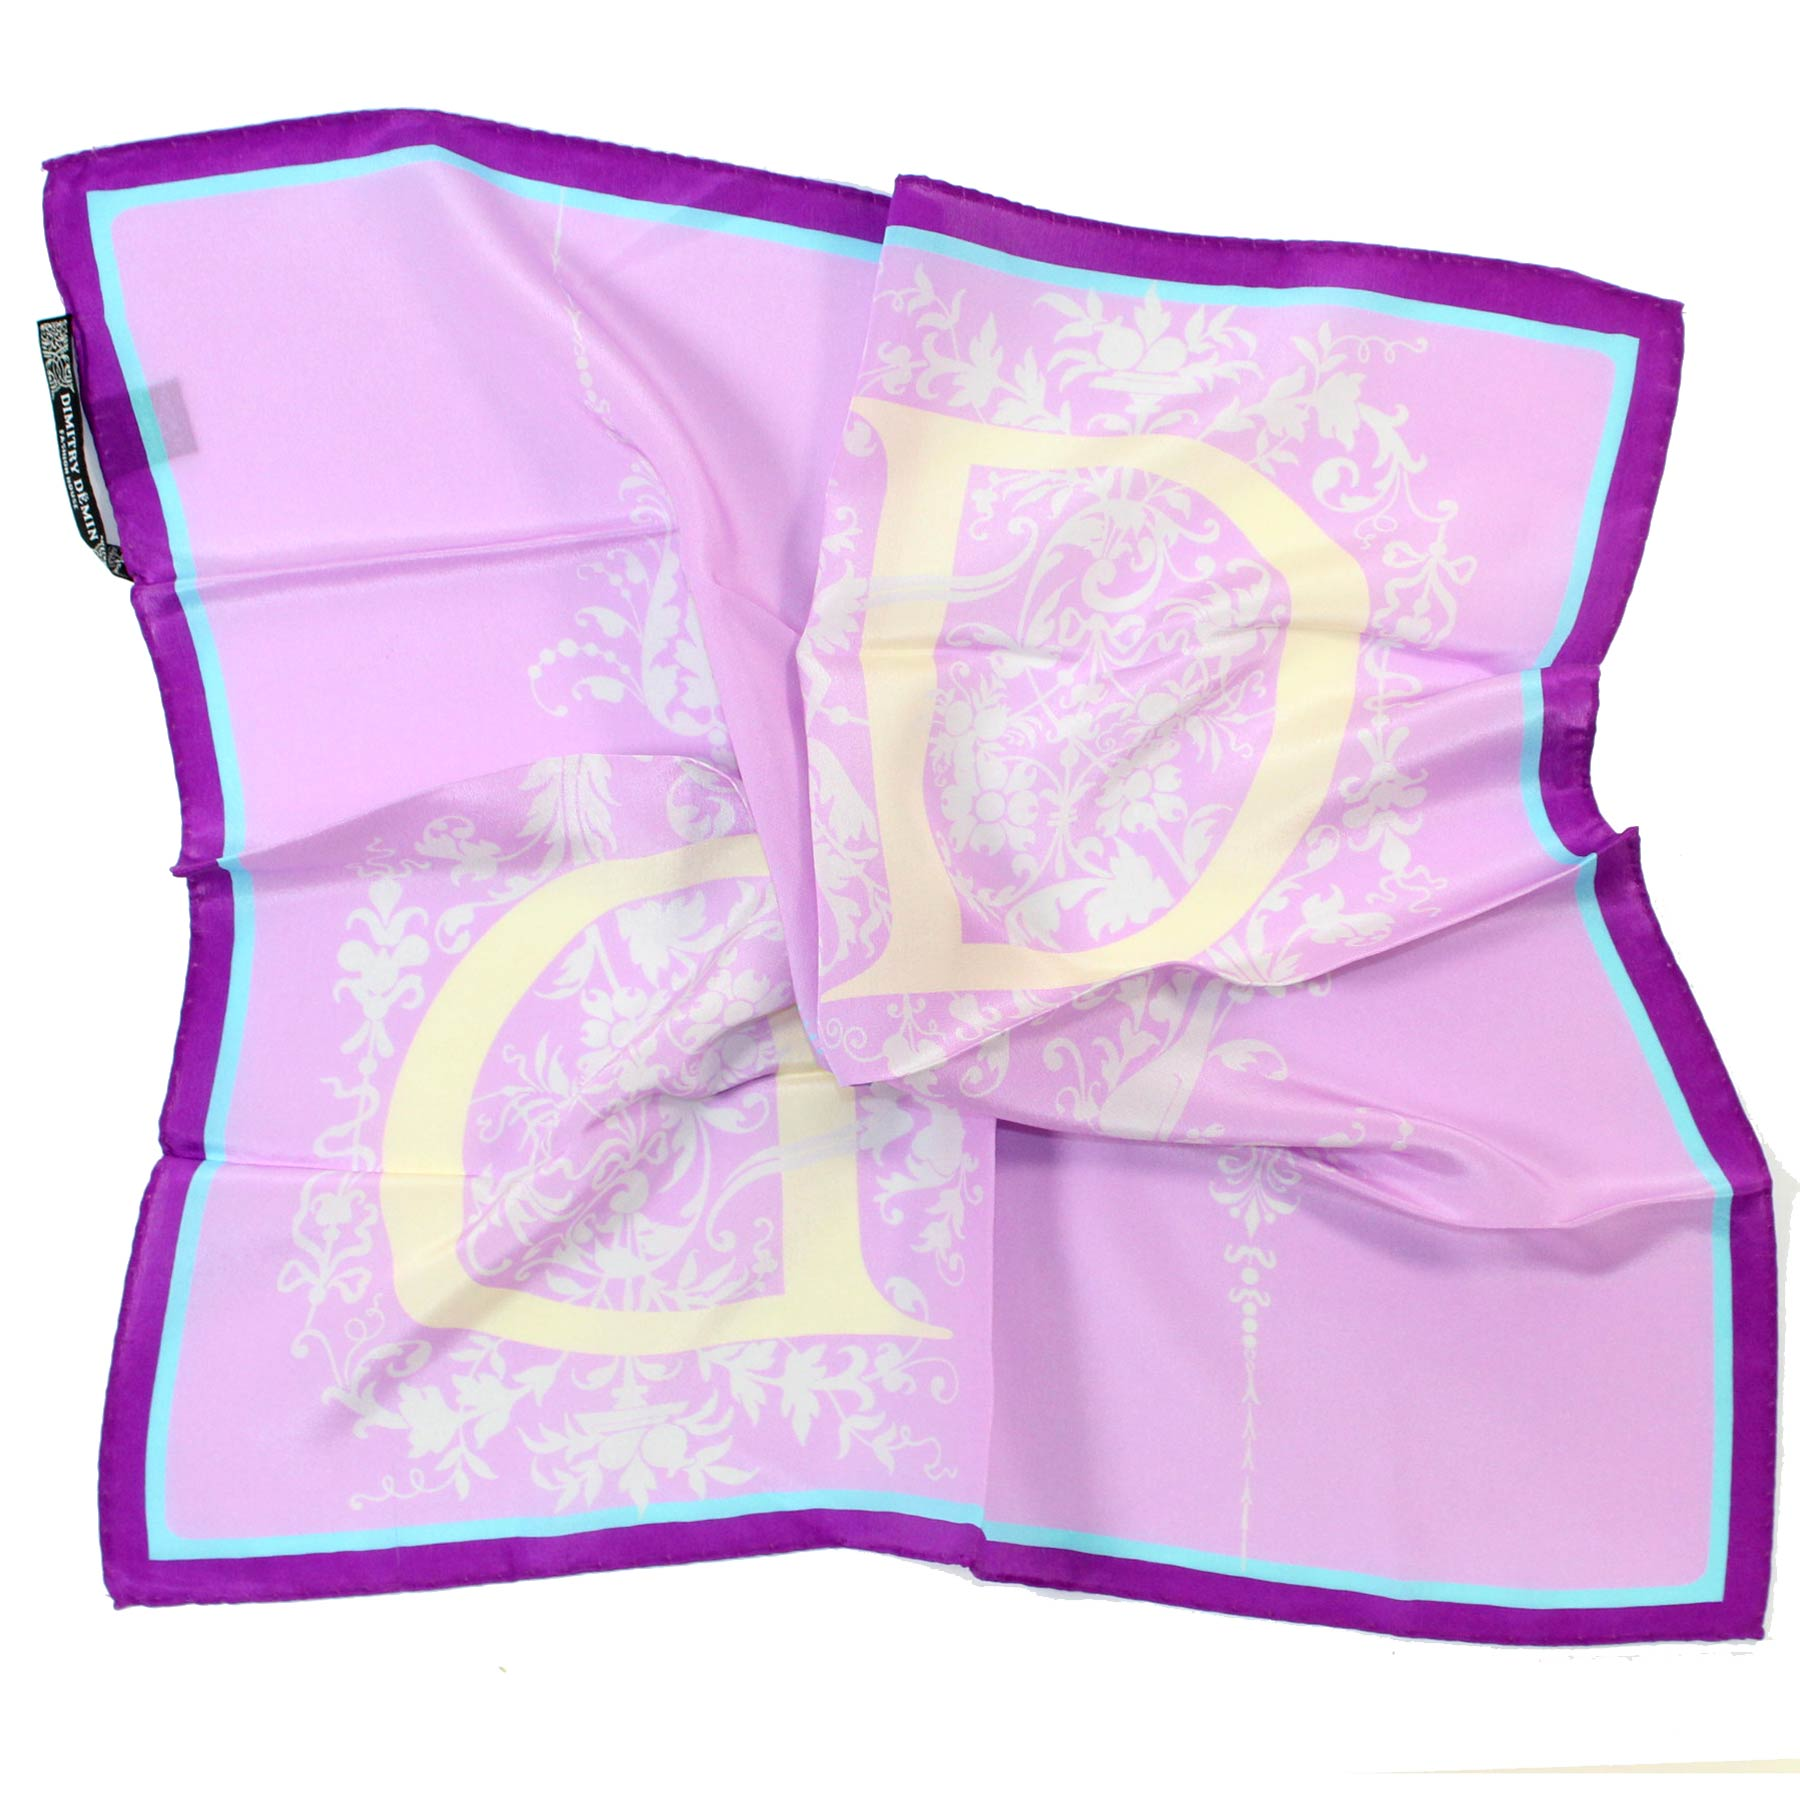 Dimitry Demin Small Silk Scarf Lilac